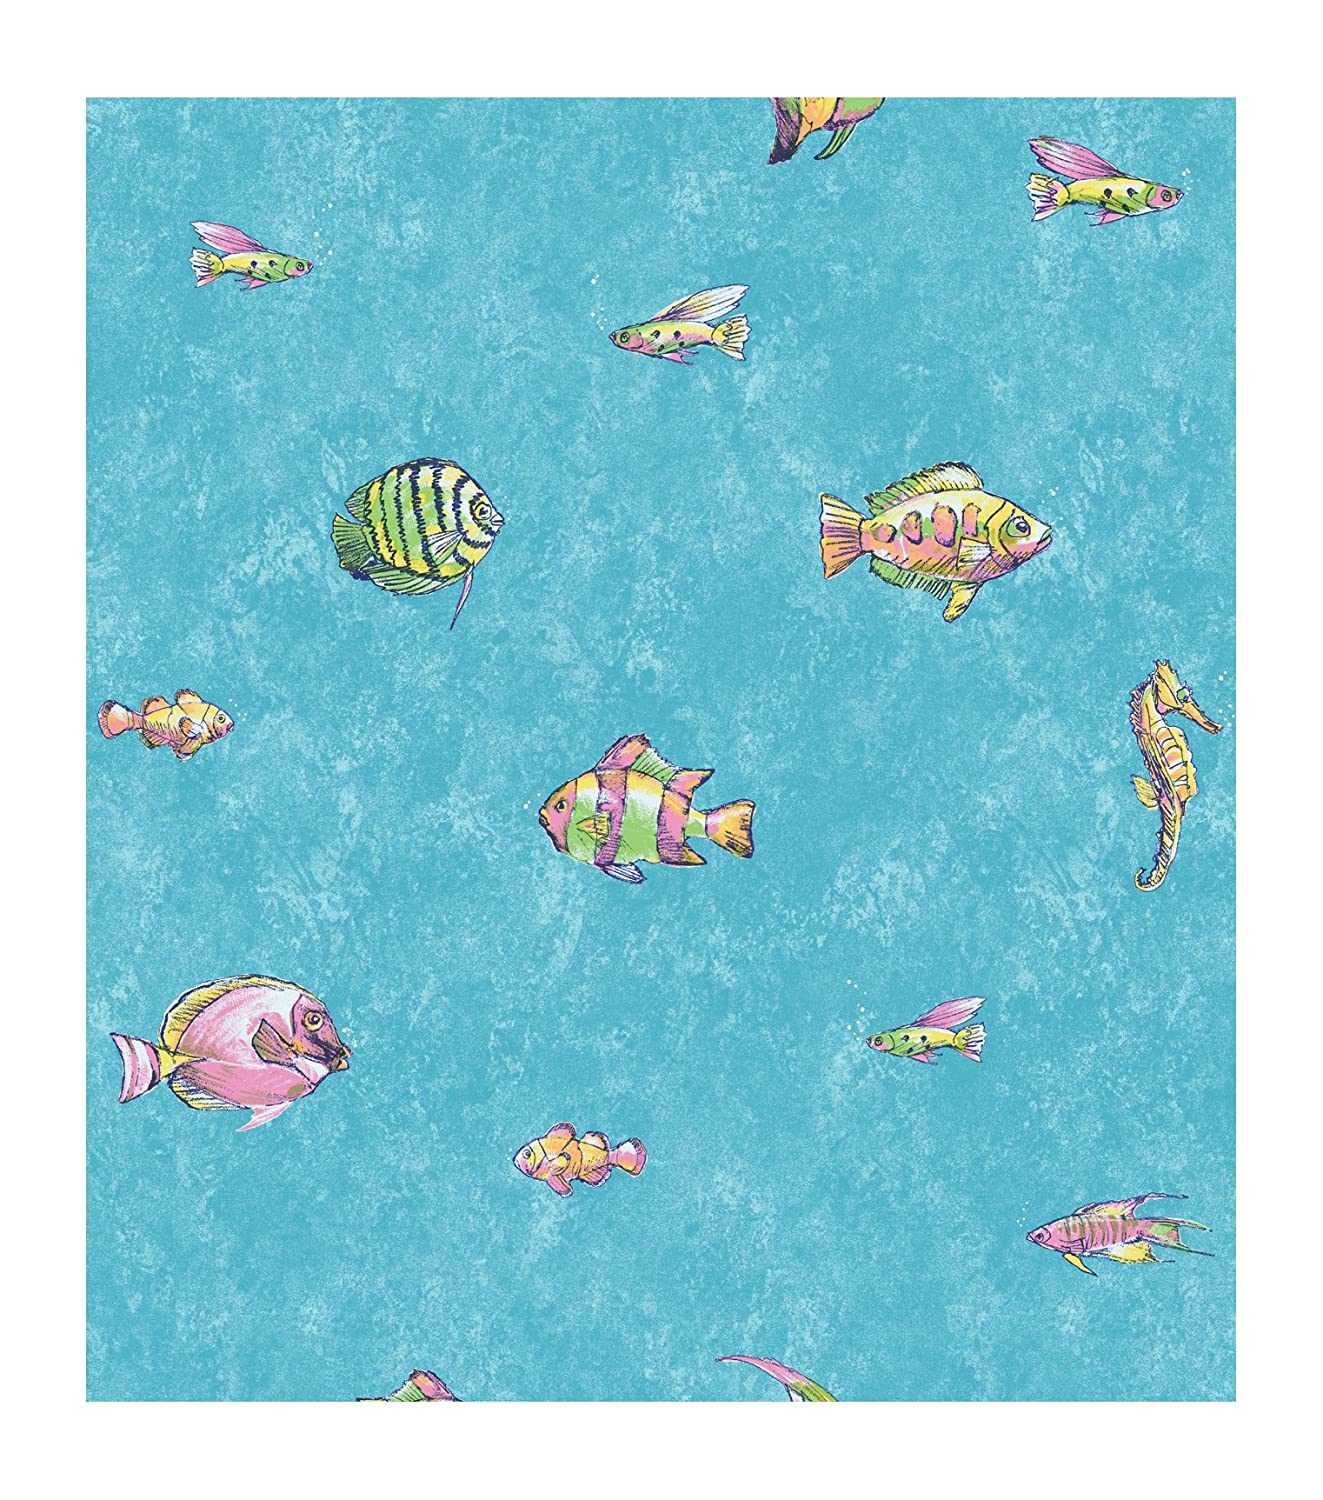 York Wallcoverings CK7604SMP Candice Olson Kids Under The Sea 8 X 10 Wallpaper Memo Sample Aqua